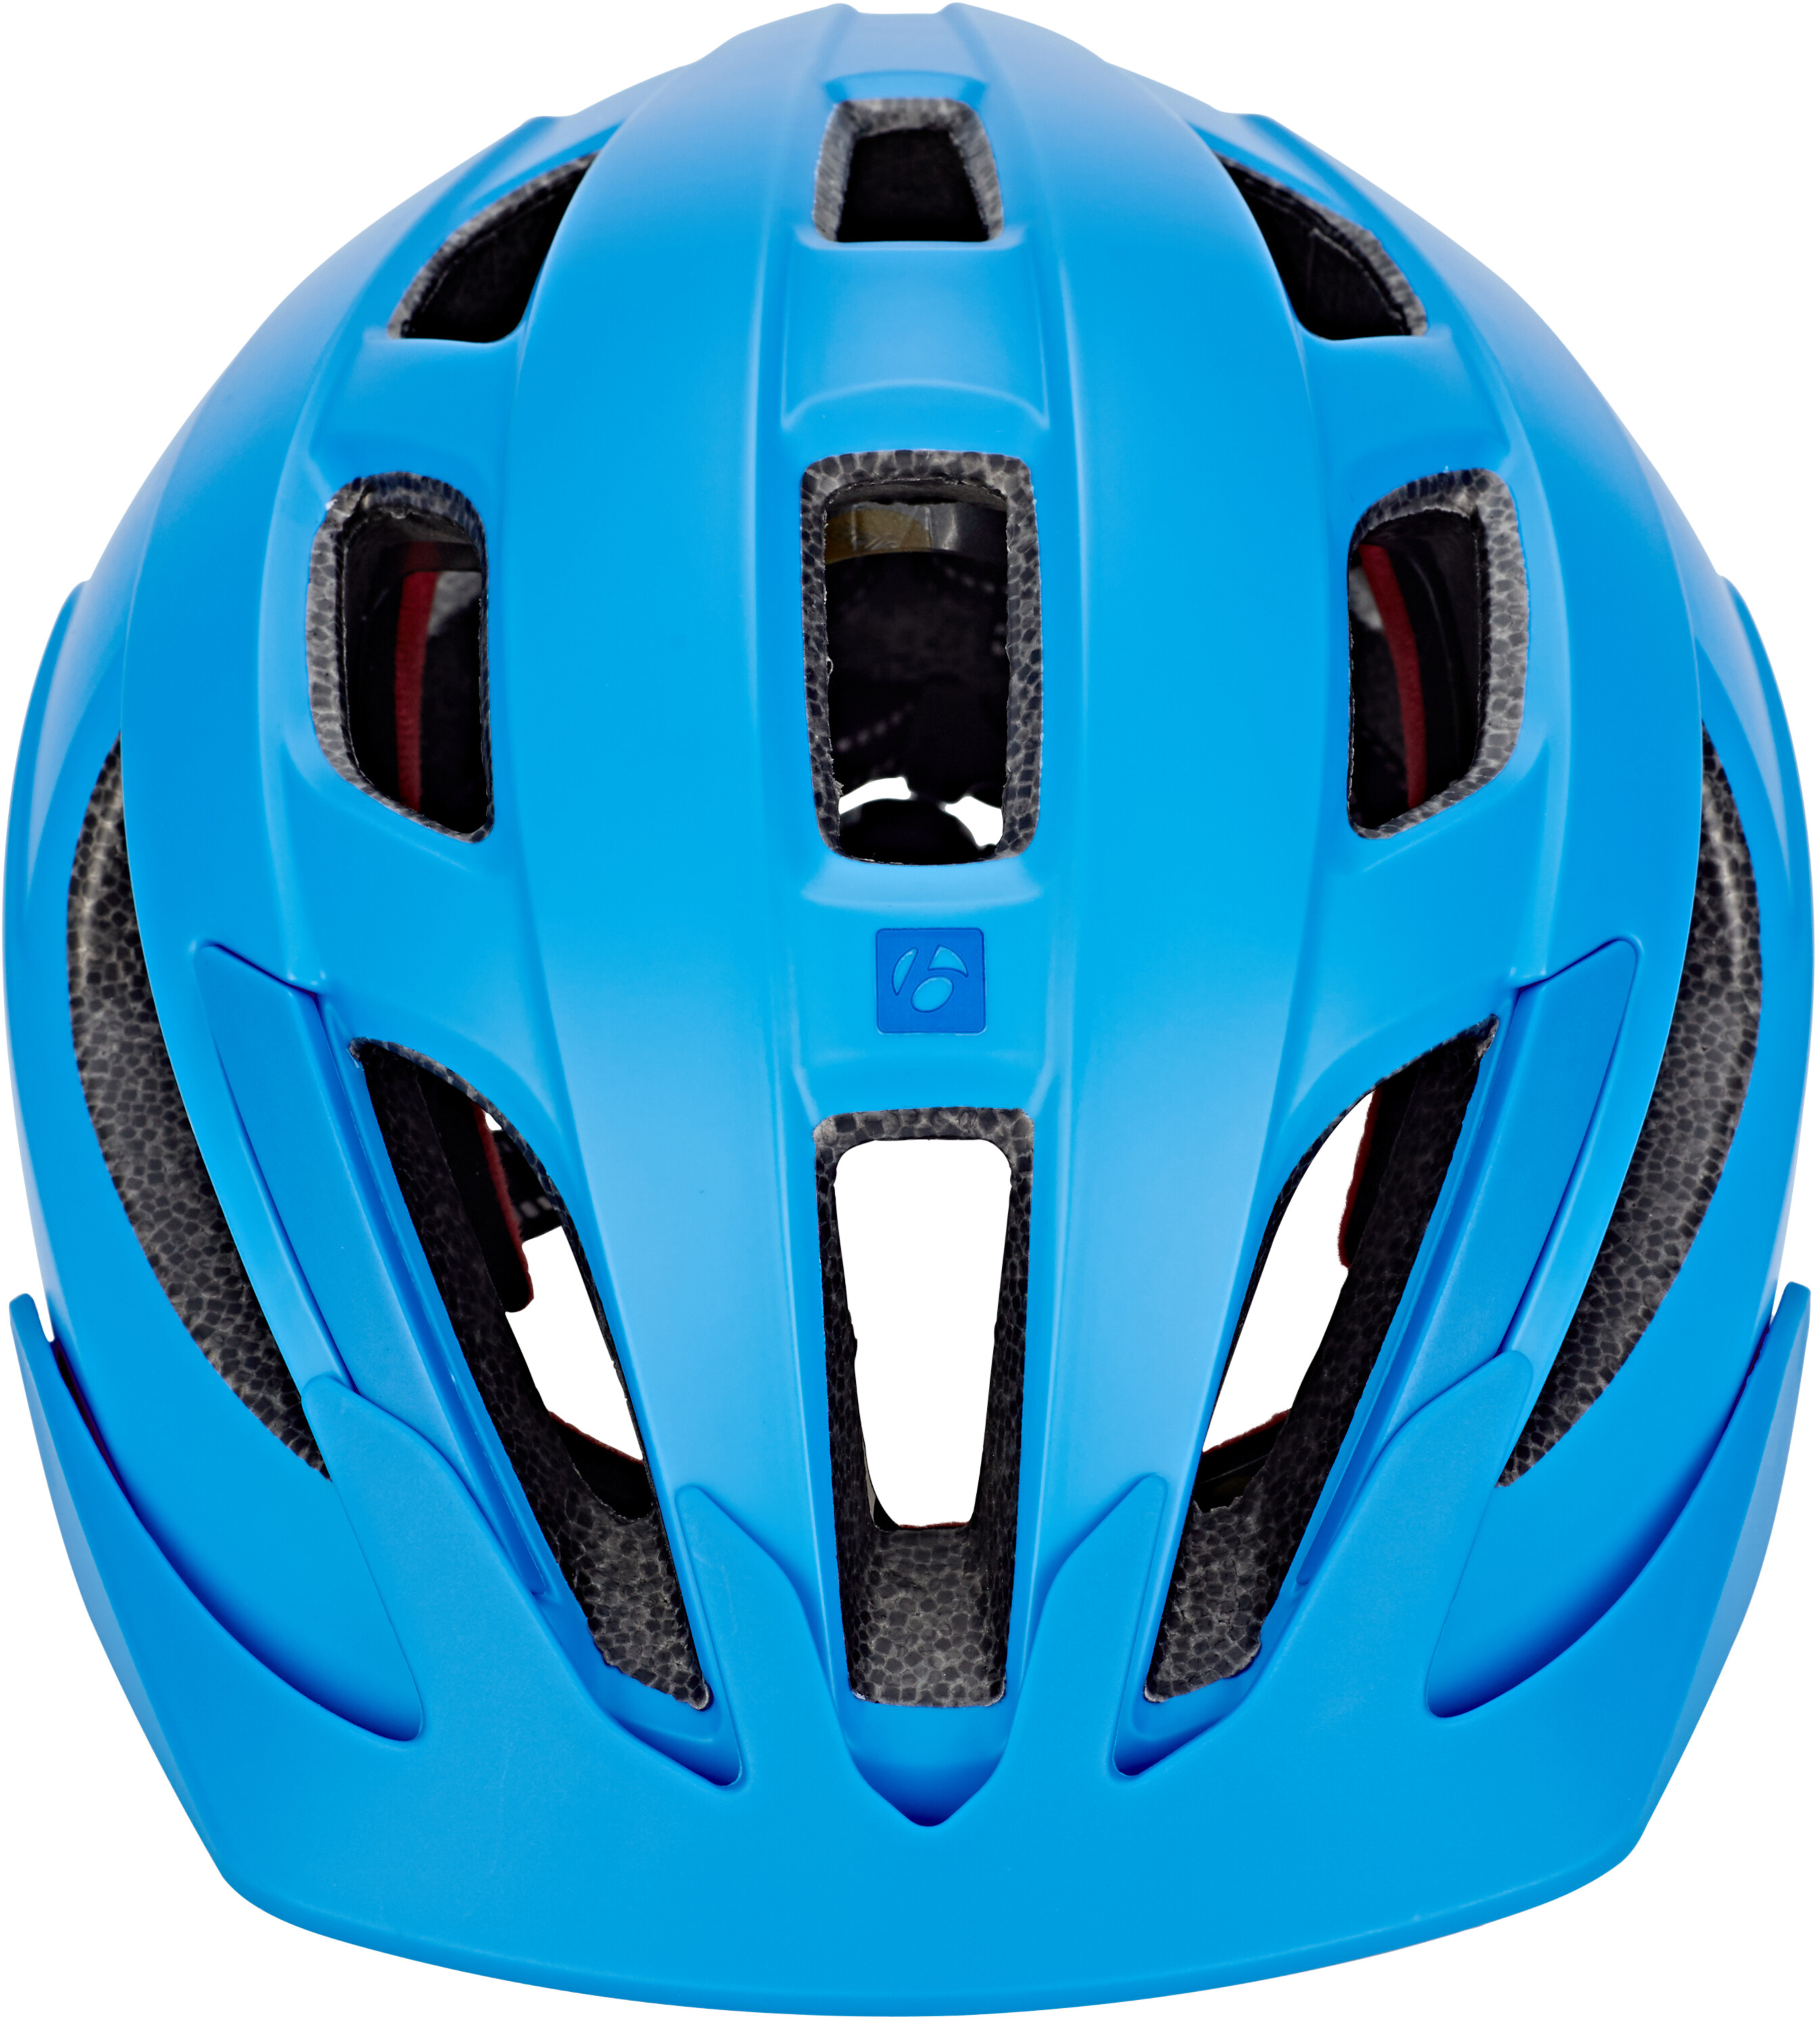 Bontrager Solstice MIPS CE Bike Helmet blue at Bikester.co.uk 8aba3fd5a